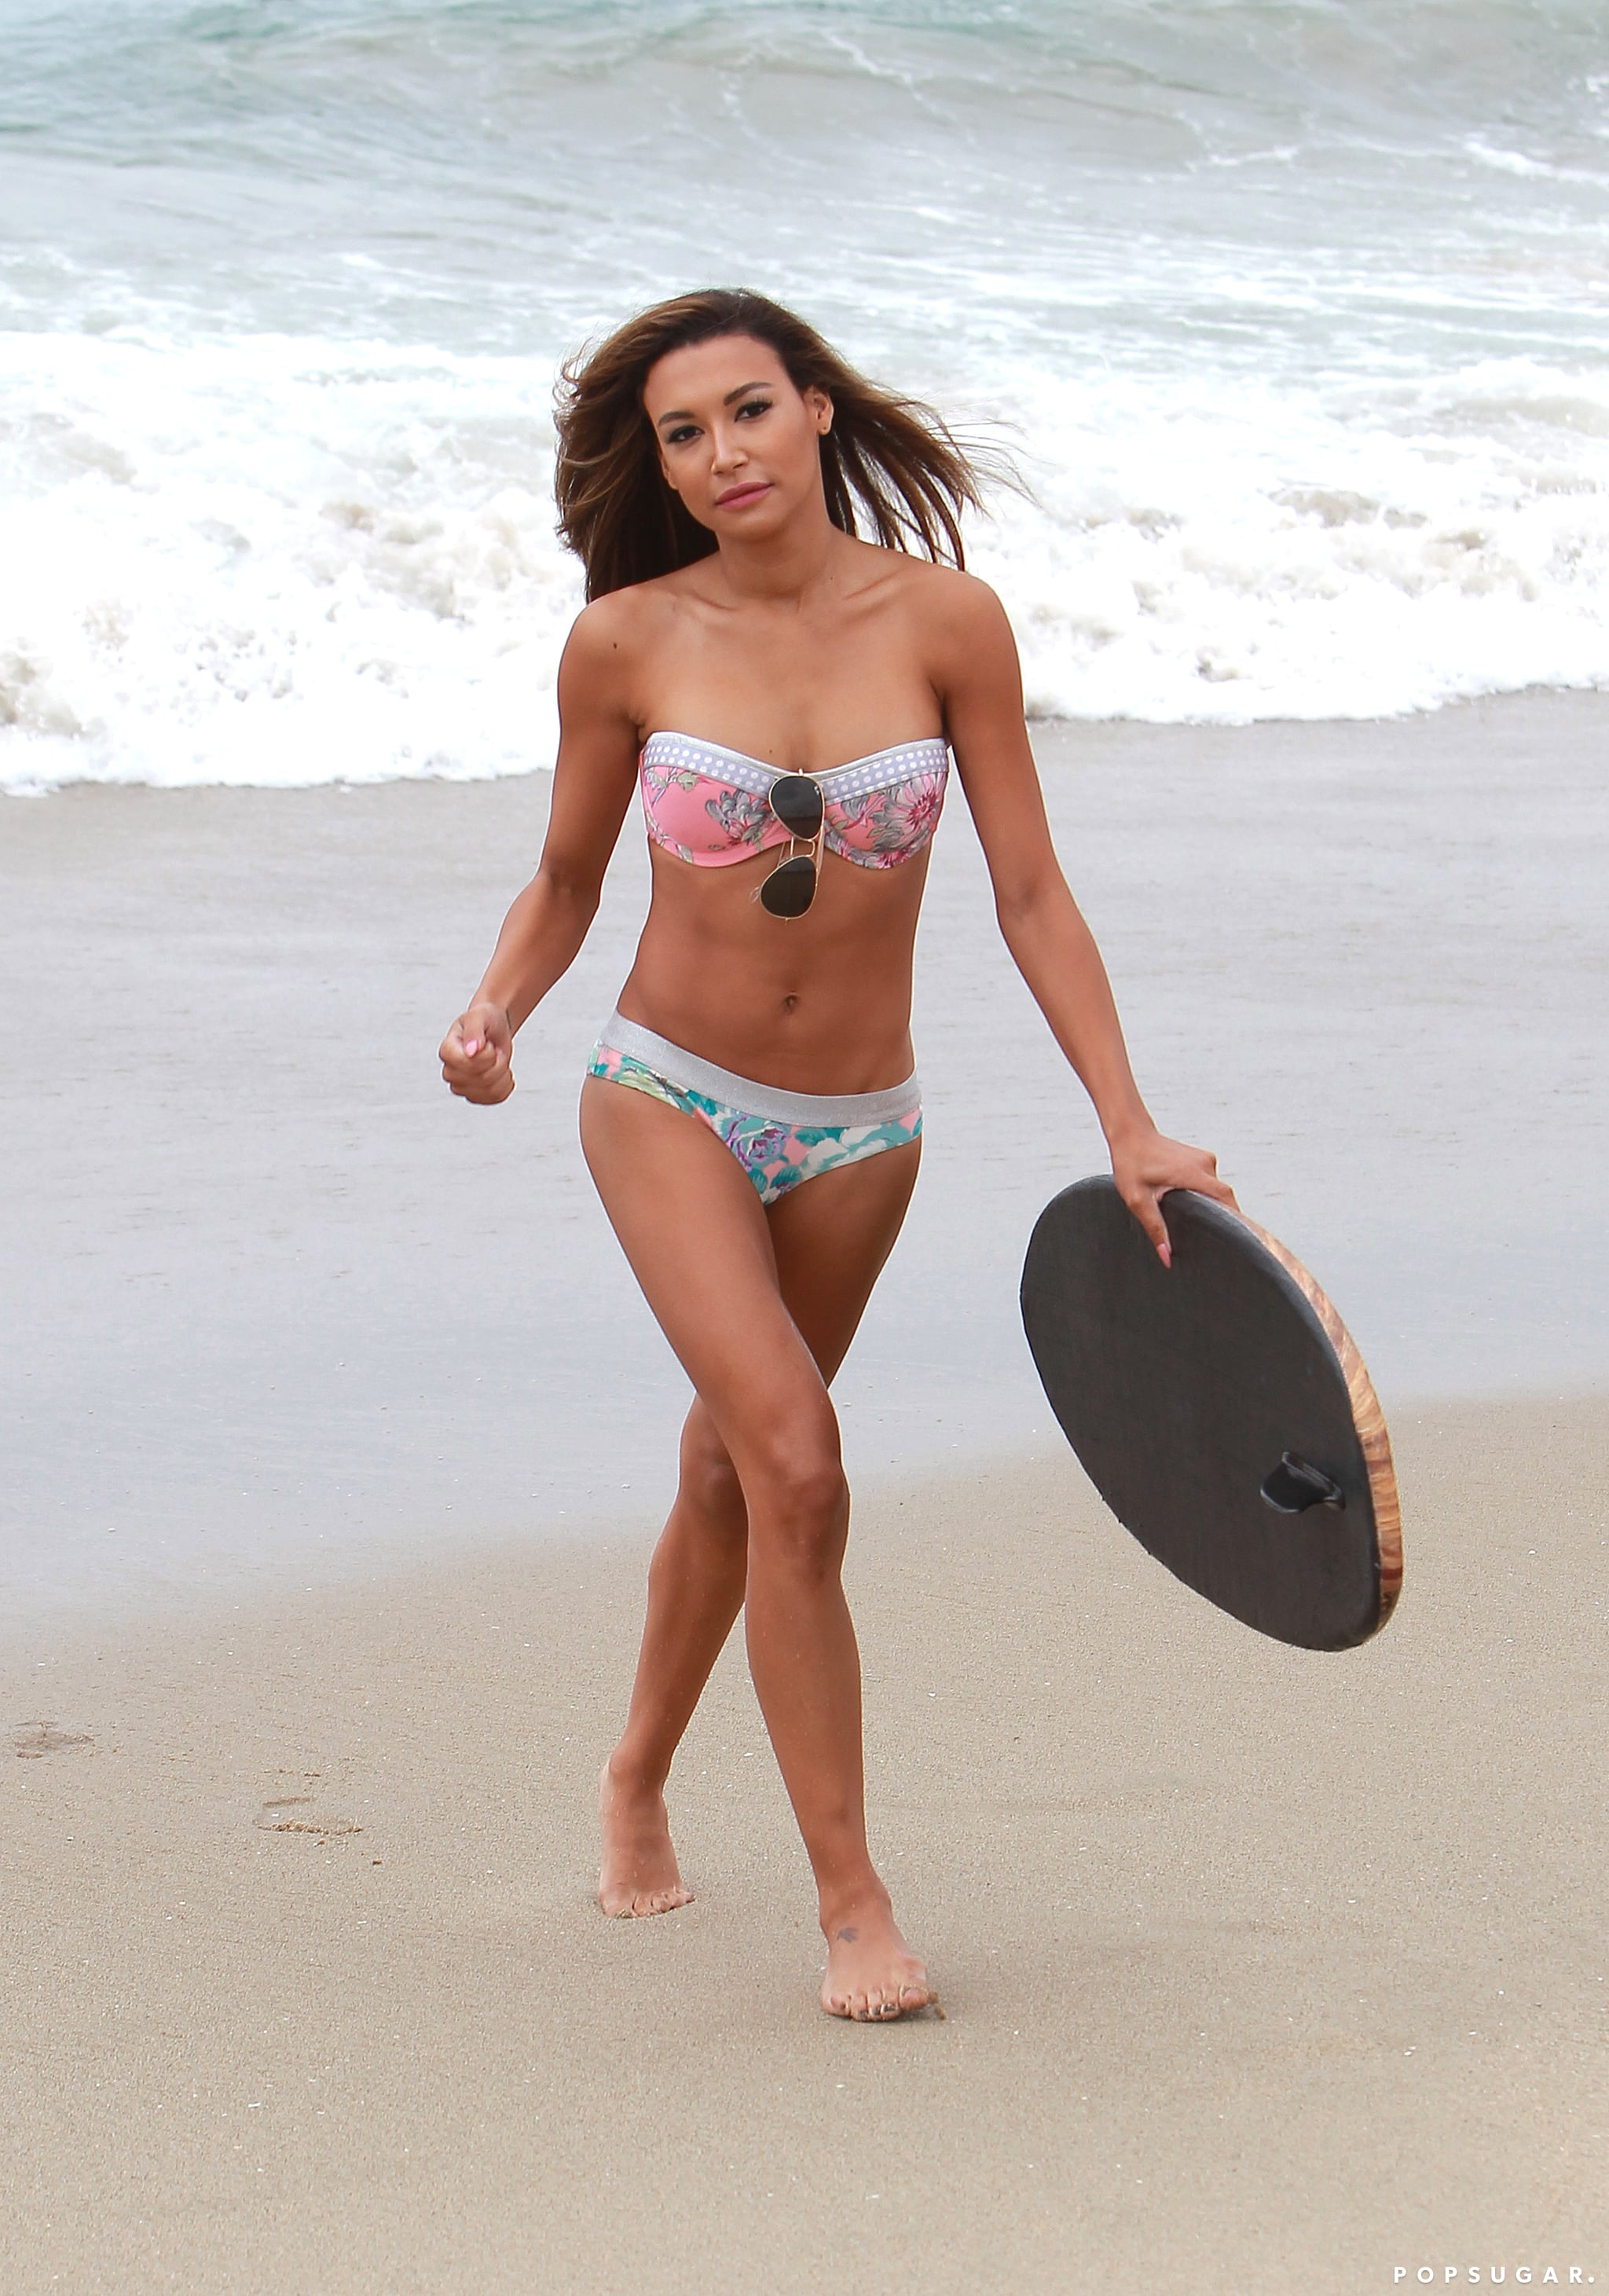 Naya Rivera, a star from the hit show Glee, was at an LA beach in her bikini in June 2013.